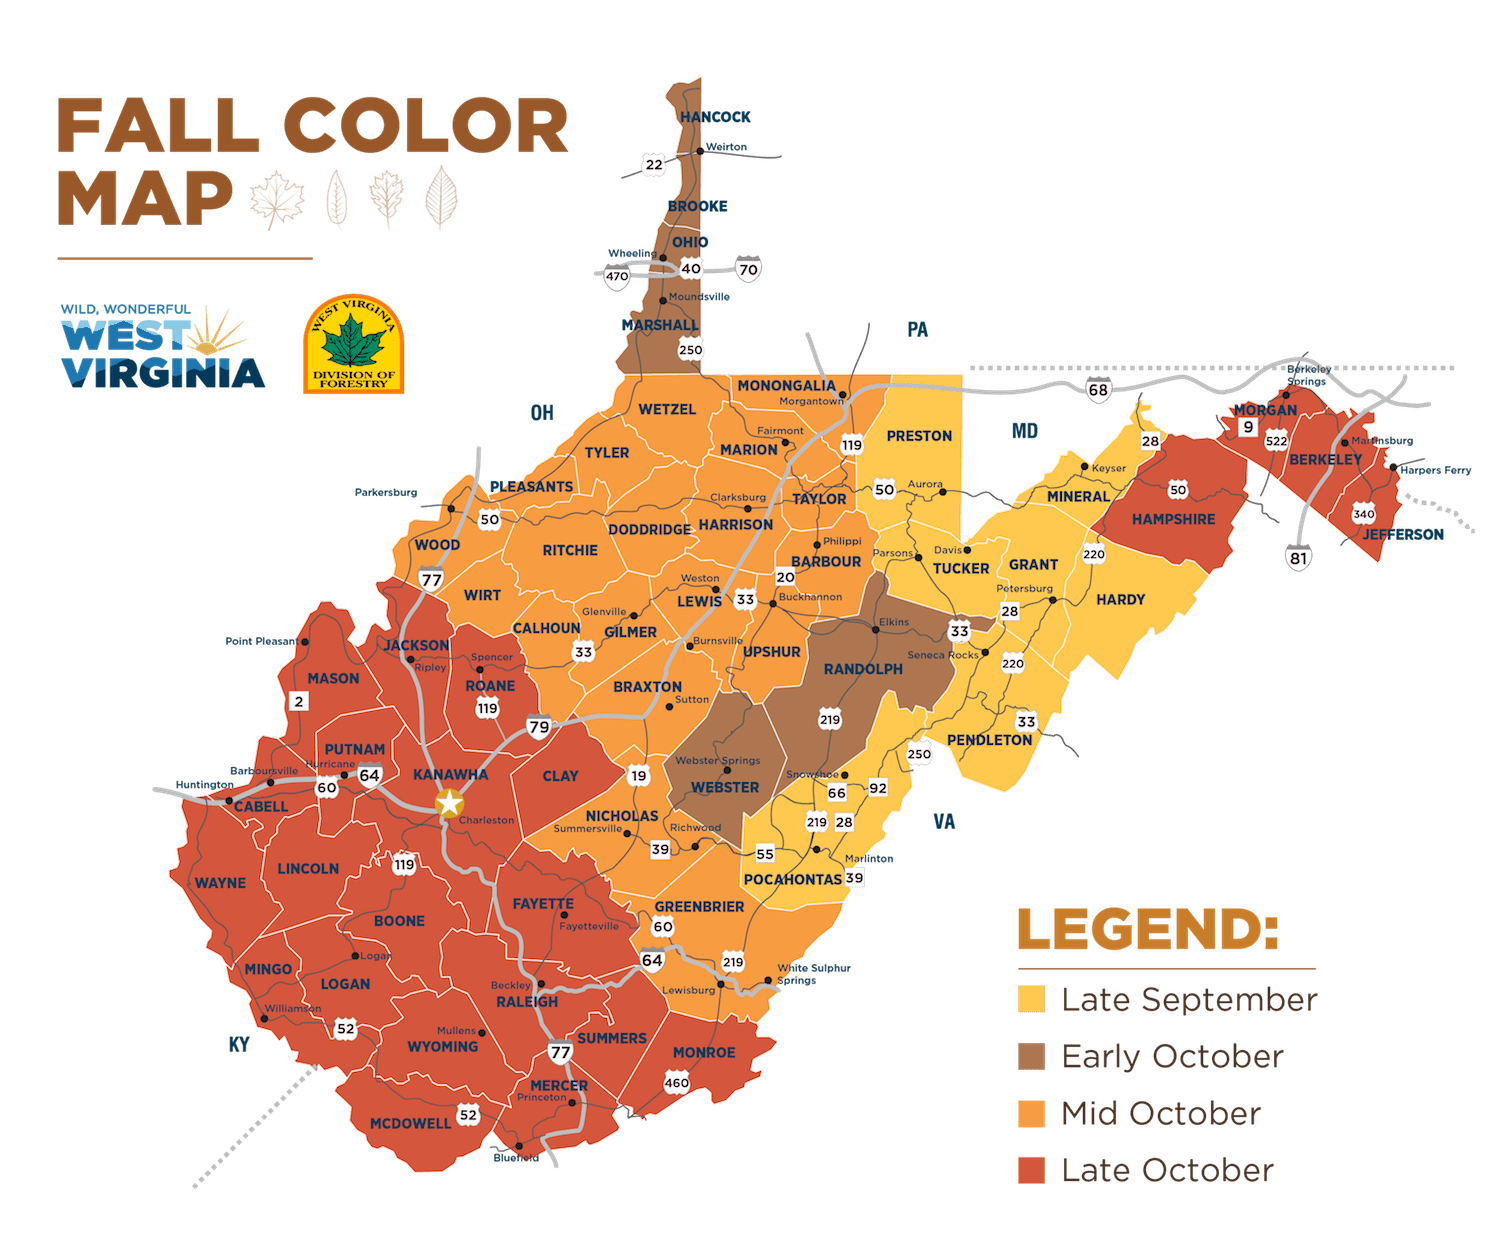 Pantone Color Forecast 2017 Fall Color Forecast 2018 Ohio My Blog